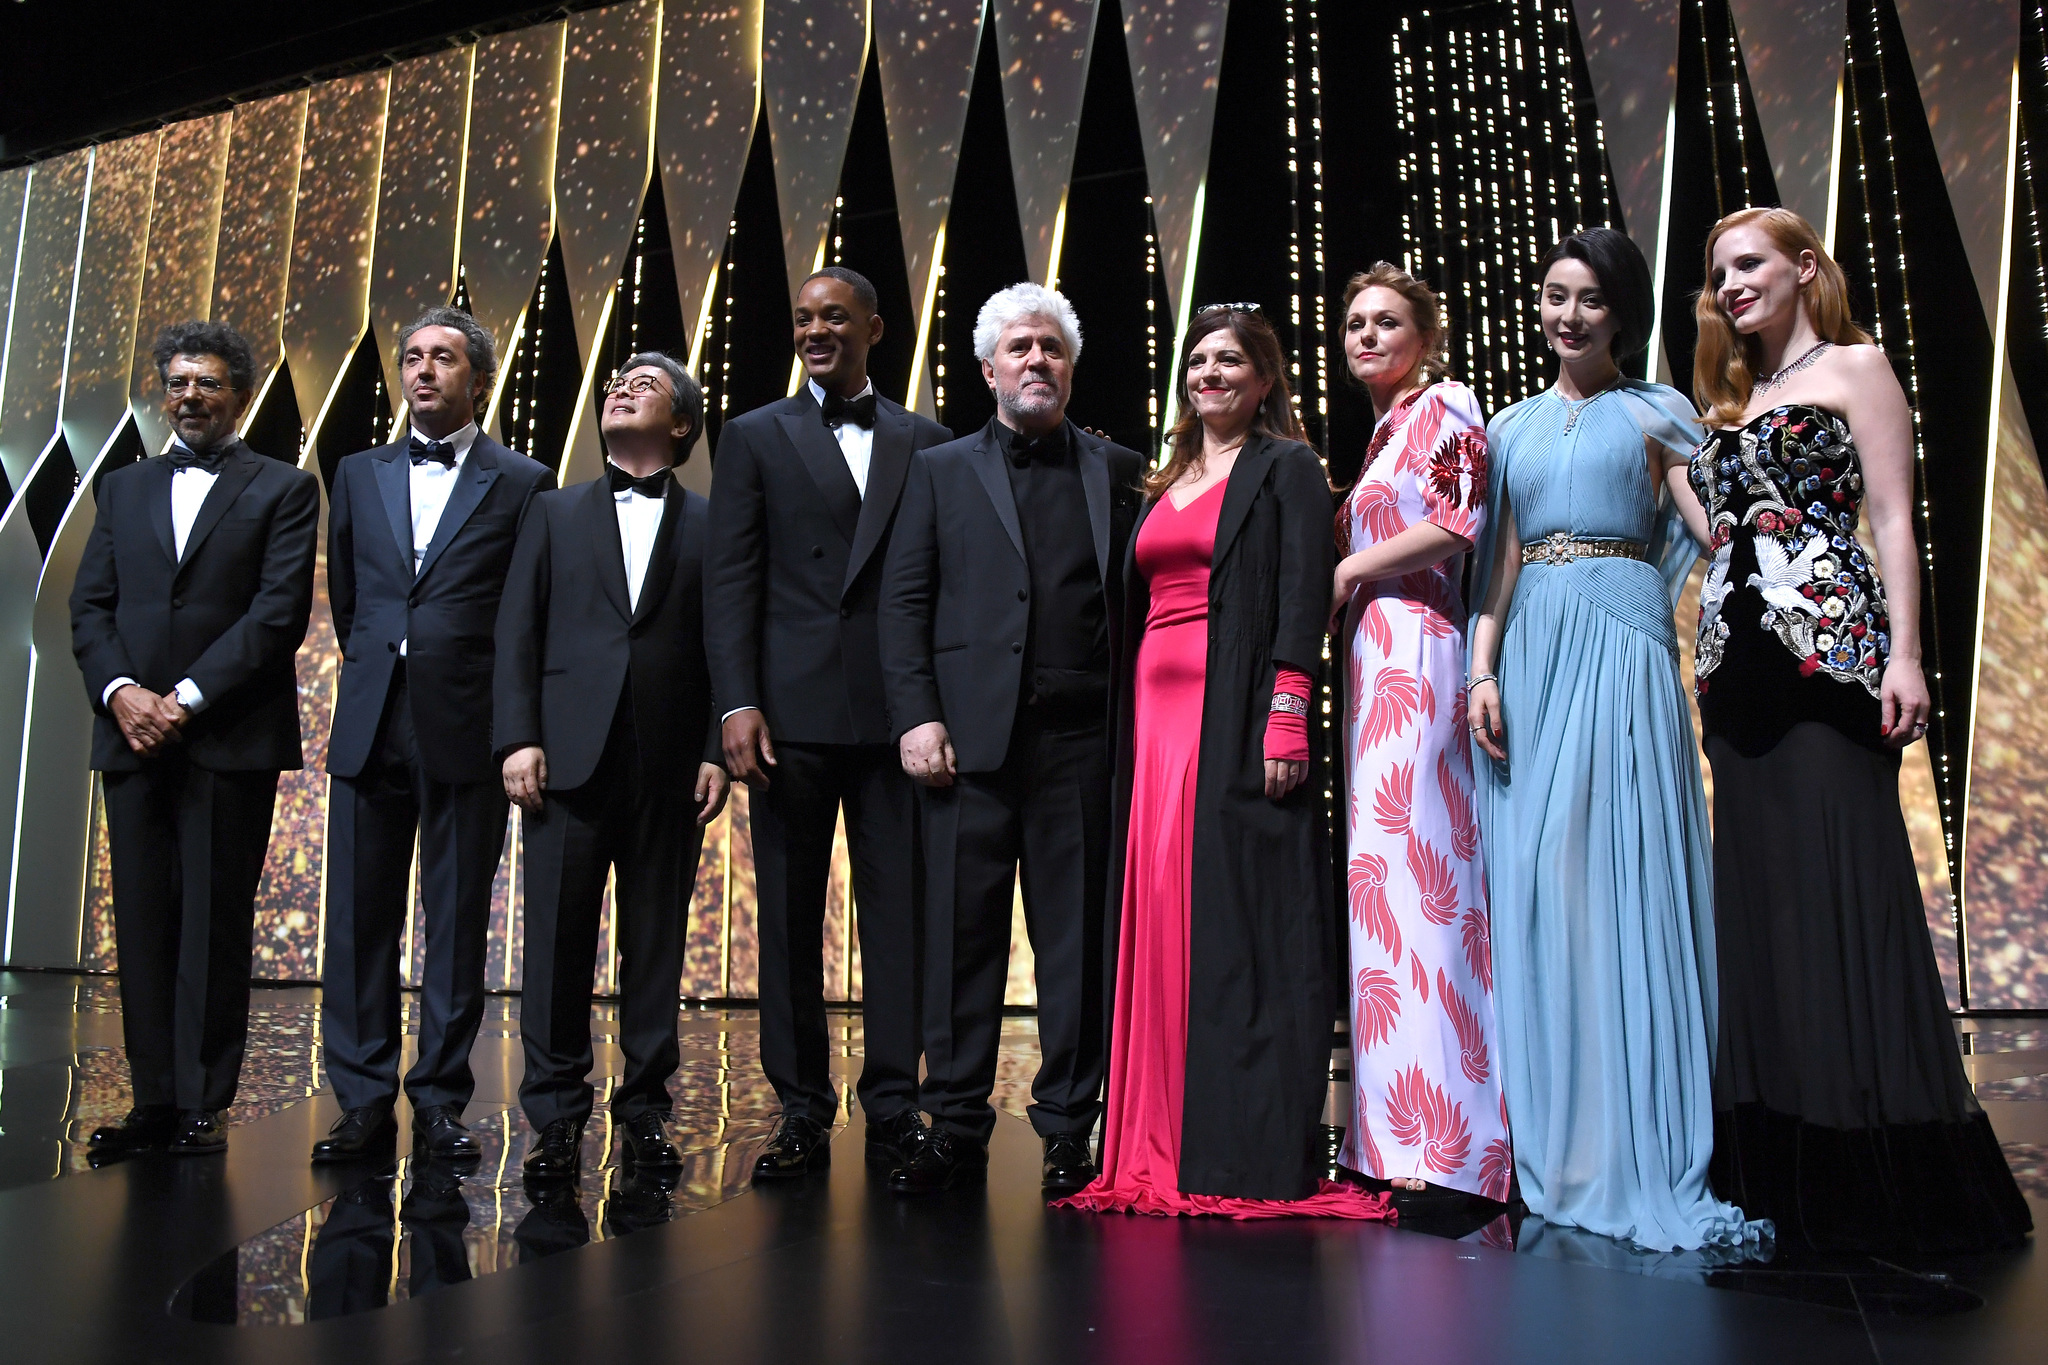 Will Smith, Pedro Almodóvar, Gabriel Yared, Maren Ade, Agnès Jaoui, Chan-wook Park, Paolo Sorrentino, Bingbing Fan, and Jessica Chastain